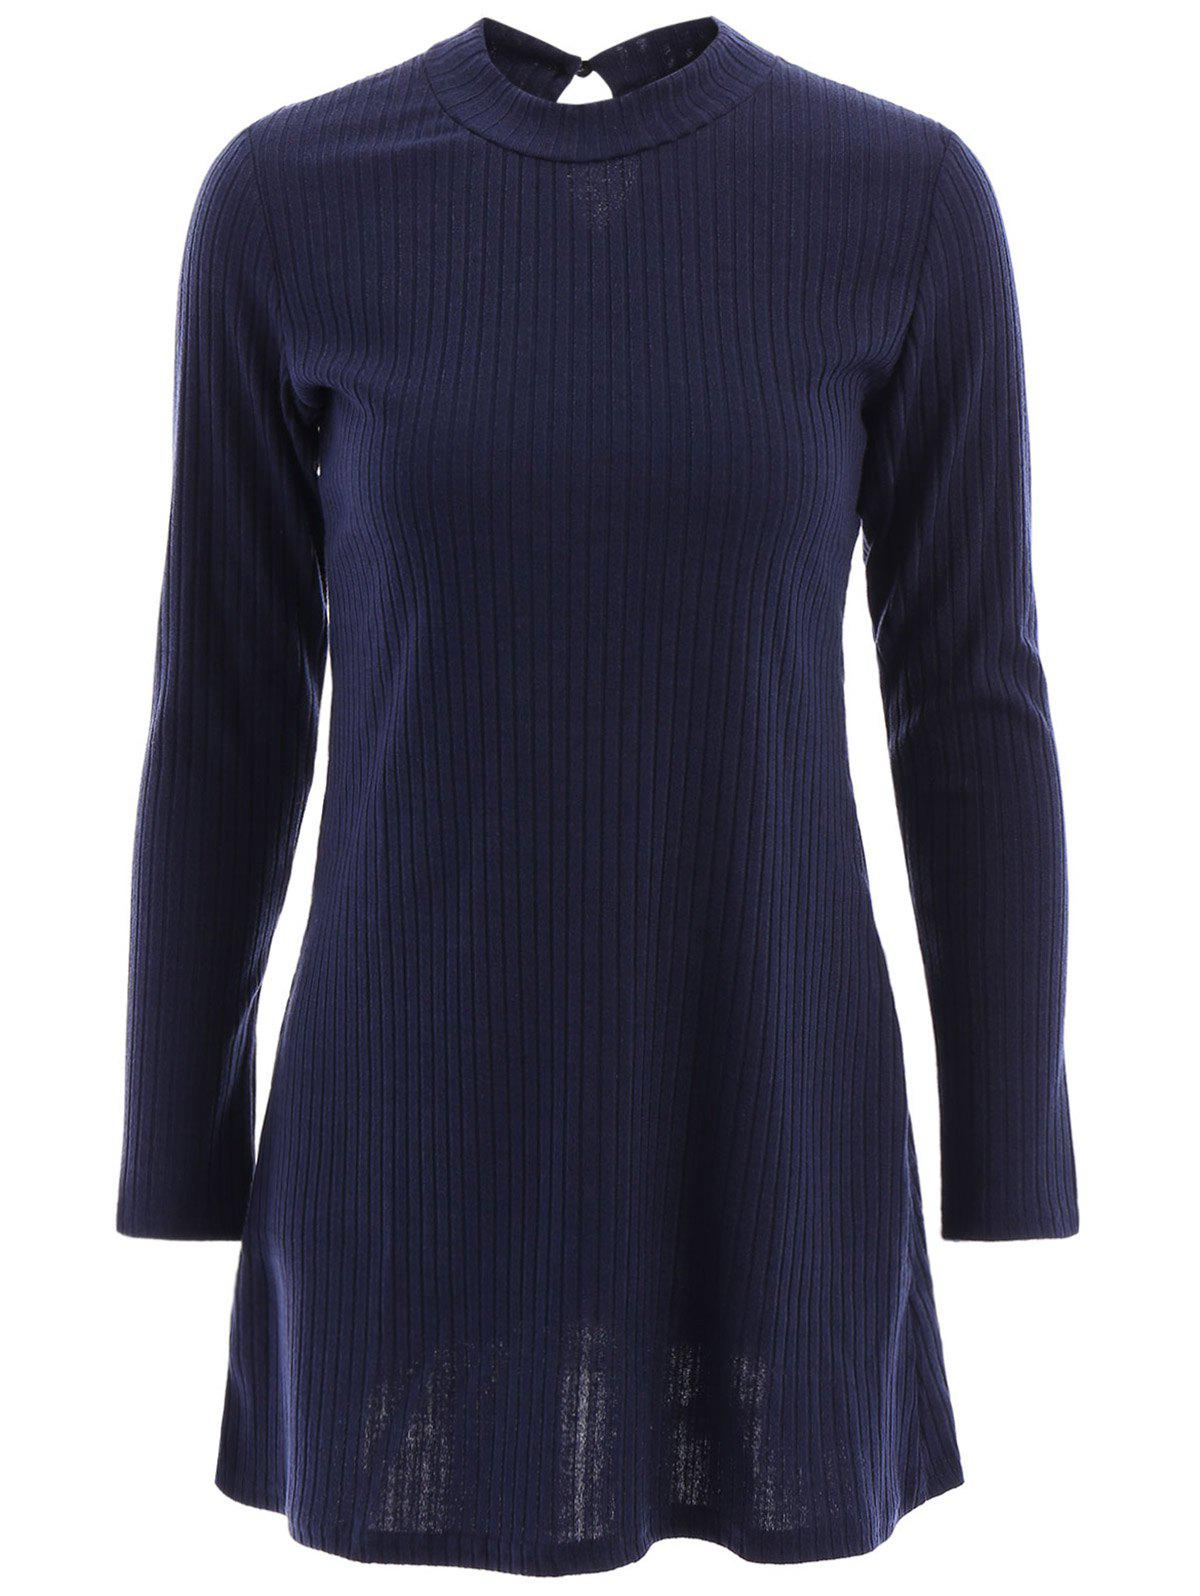 Brief Womens Round Neck Long Sleeve Hollow Out A-Line DressWomen<br><br><br>Size: M<br>Color: PURPLISH BLUE